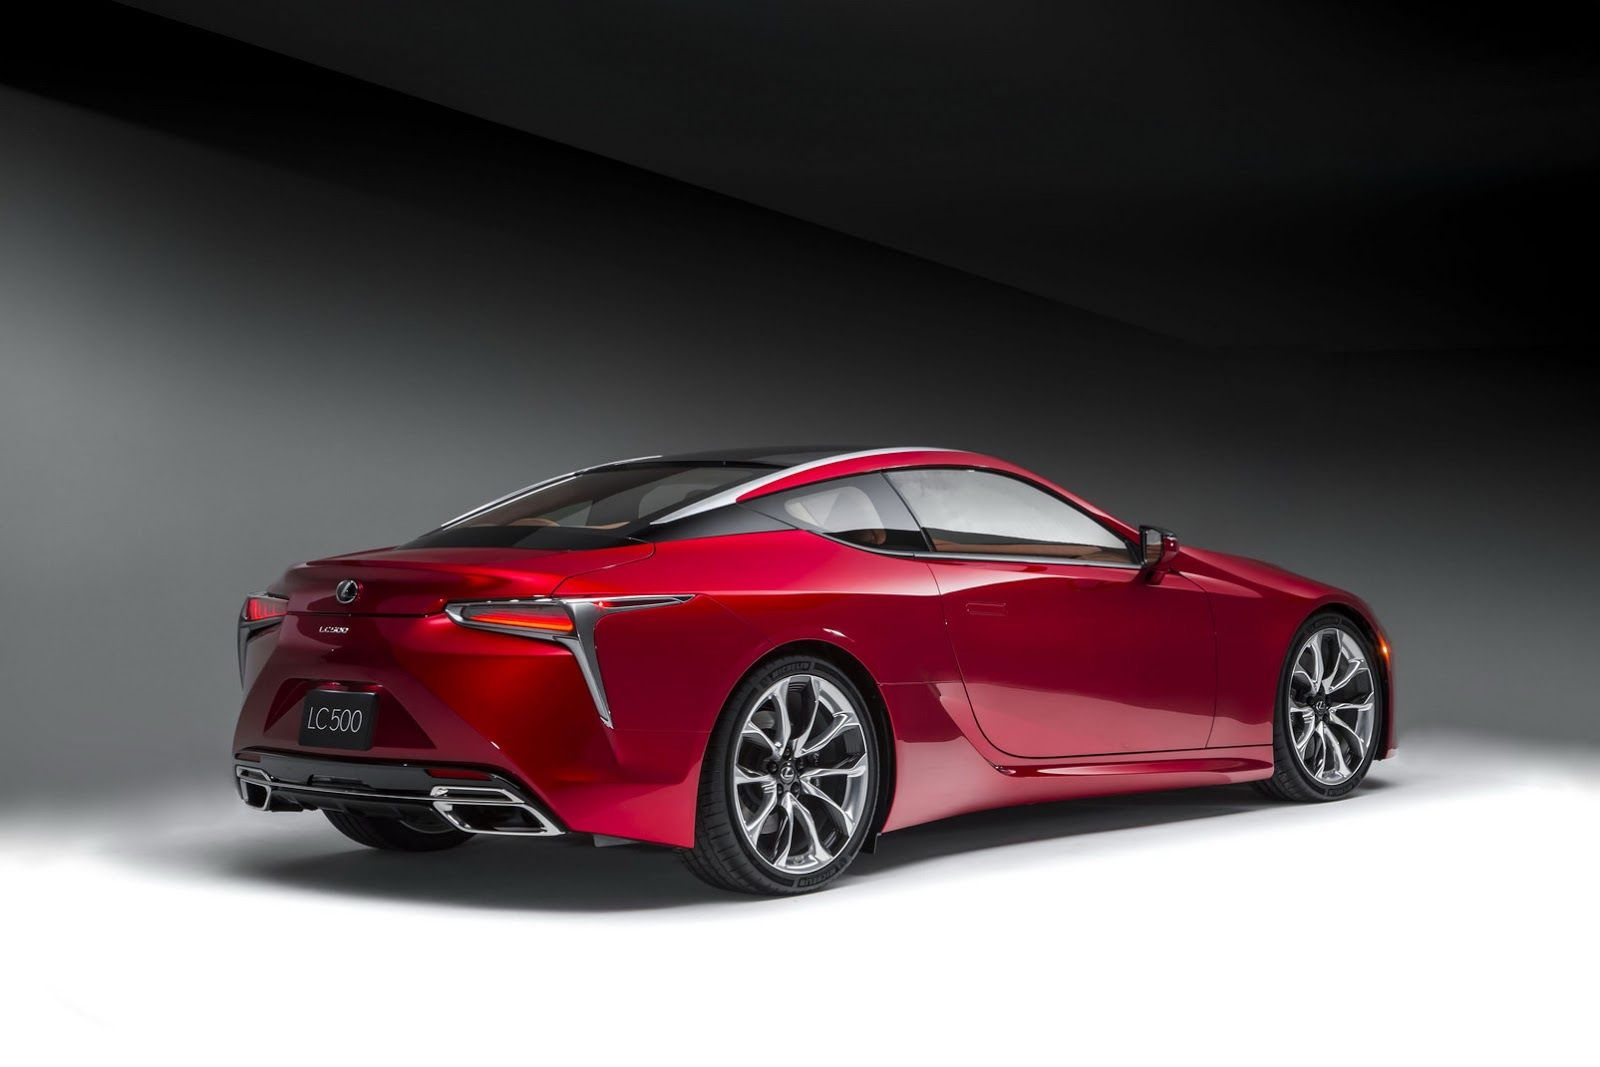 2017 Lc 500 With 467hp Is The Most Dynamic Lexus Since The Lfa 51 Pics Videos Carscoops Lexus Lc Lexus Coupe New Lexus